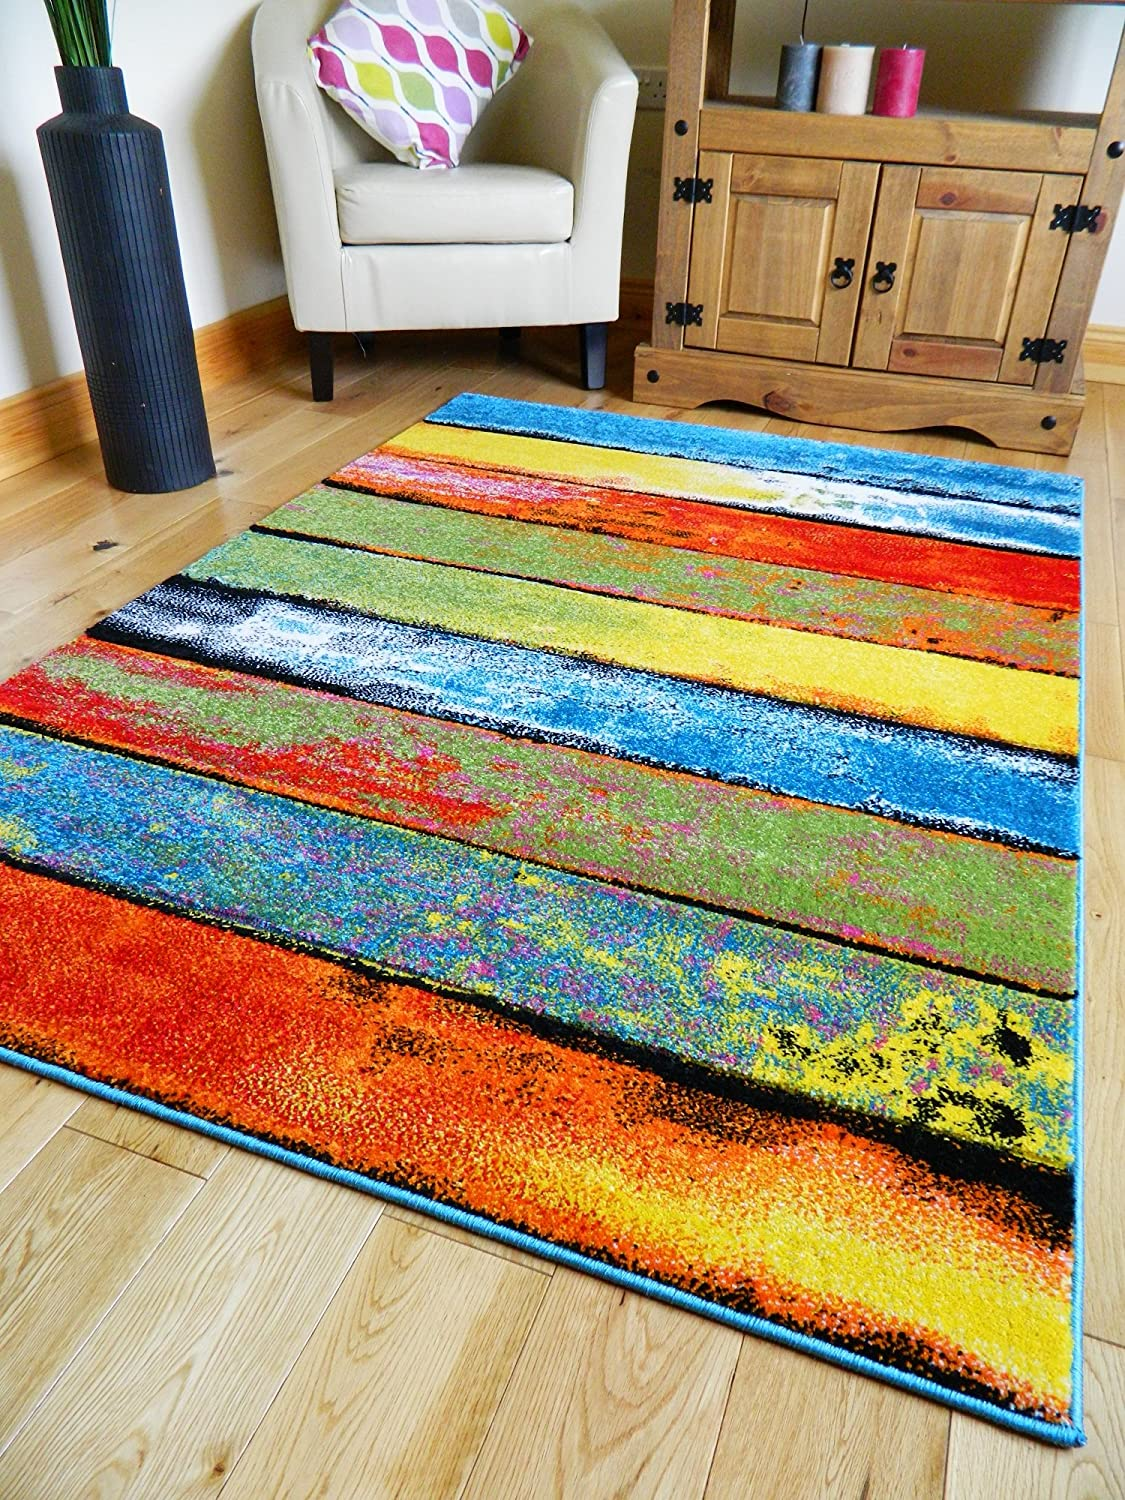 Rugs Mats Rug Runners By Home Trends Funky Ireland Vacations